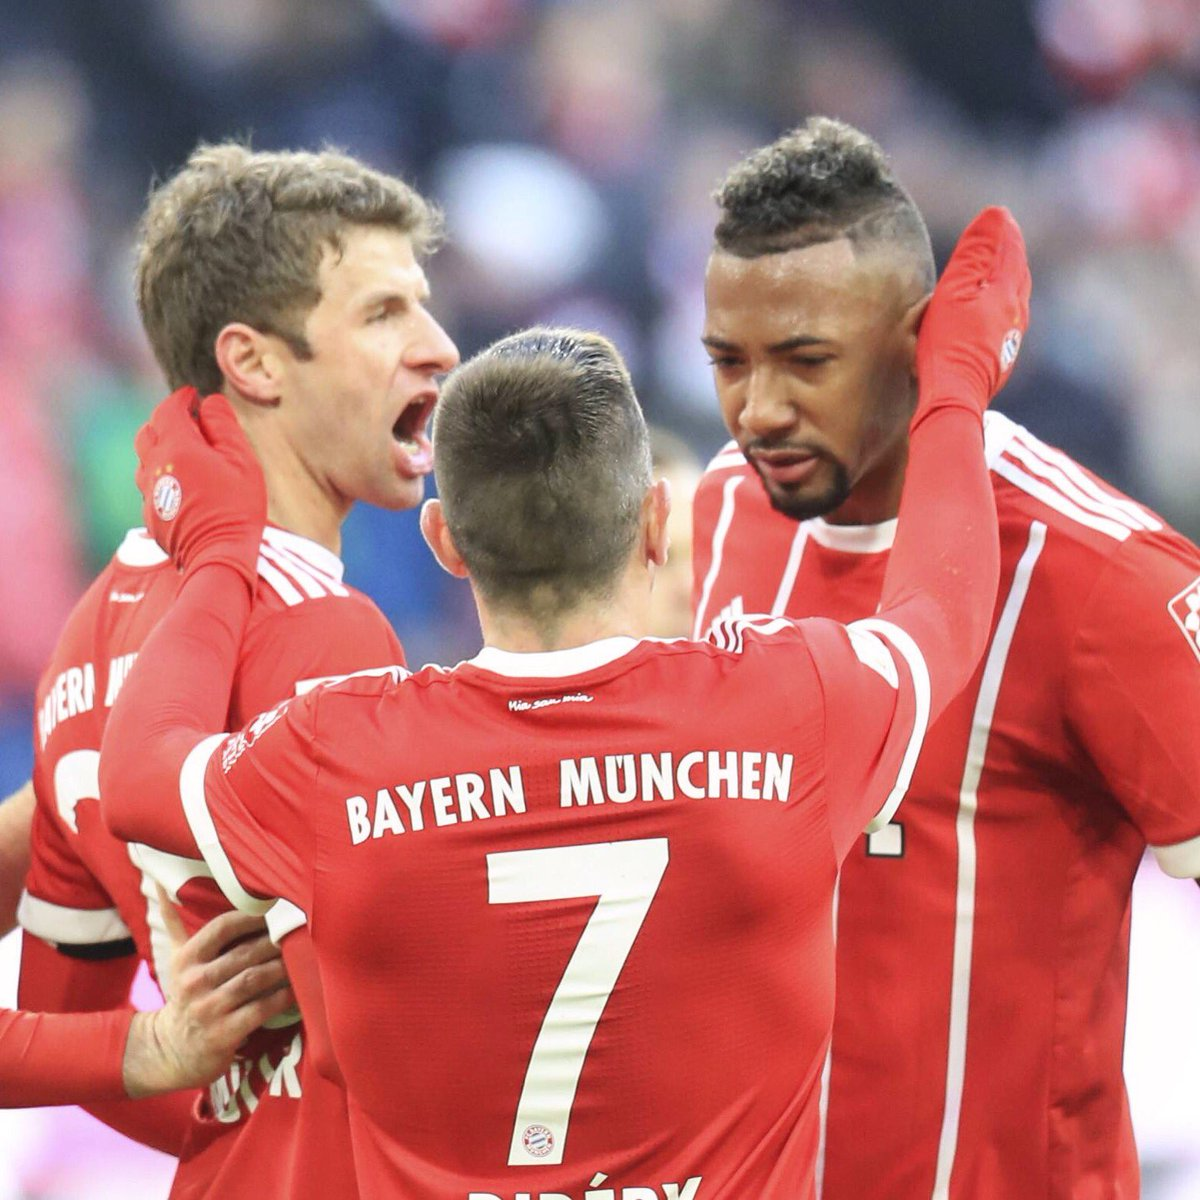 RT @JB17Official: We don't stop 👊🏽 Not a beautiful one but we take the three points ✔ @FCBayern https://t.co/AowtIqvsdi